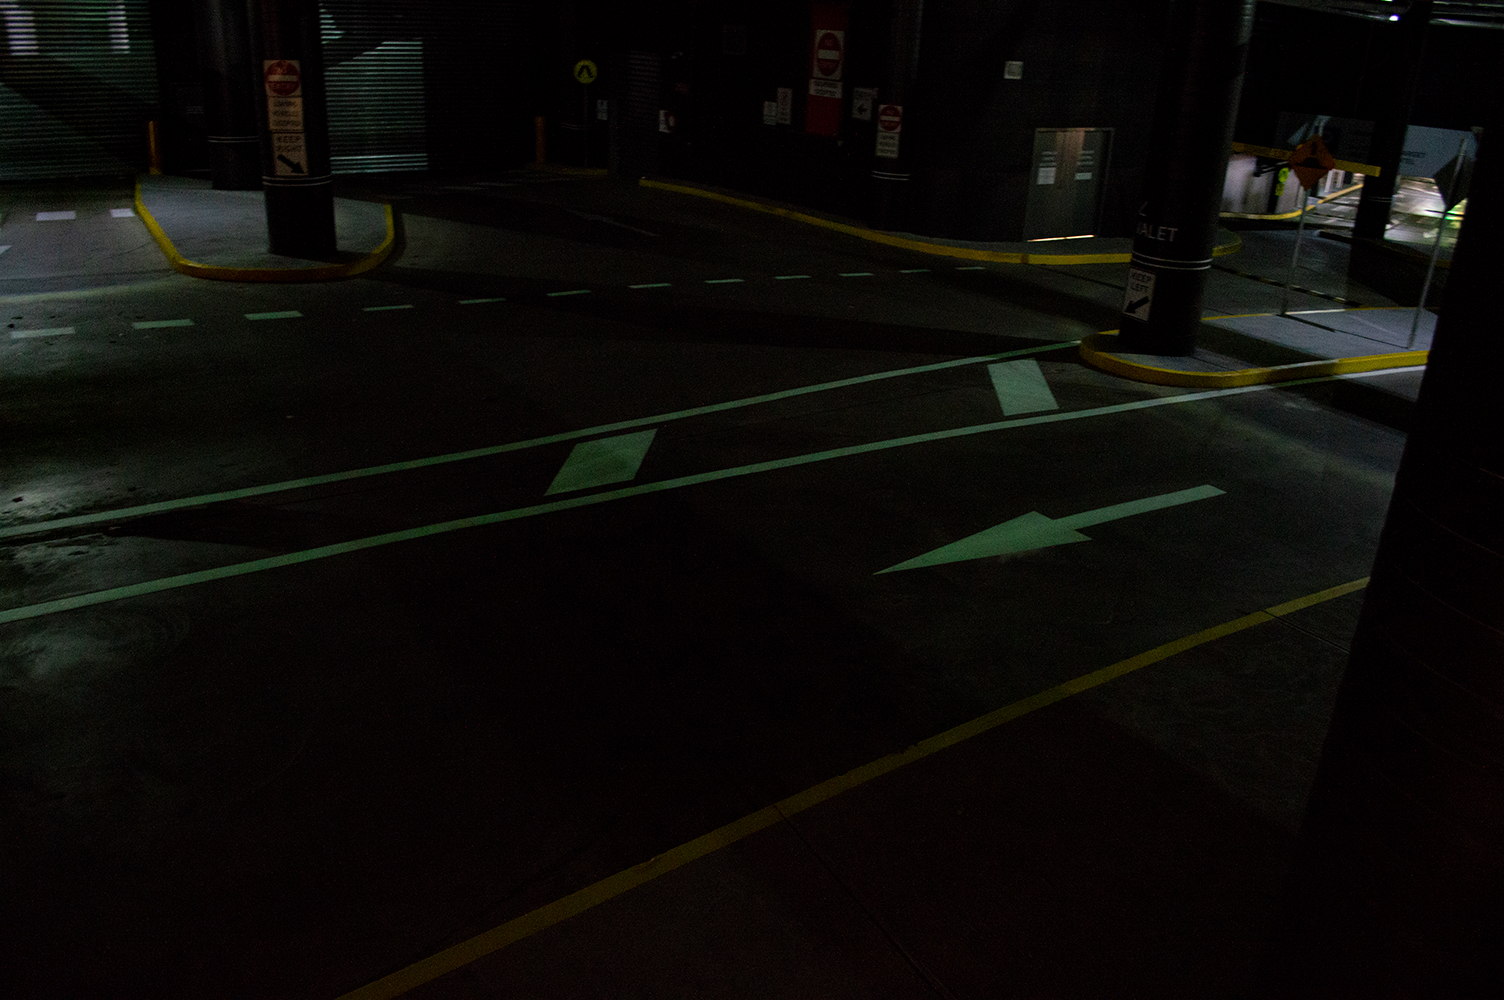 OmniGrip PL photoluminescent linemarking and pavement marking in car park